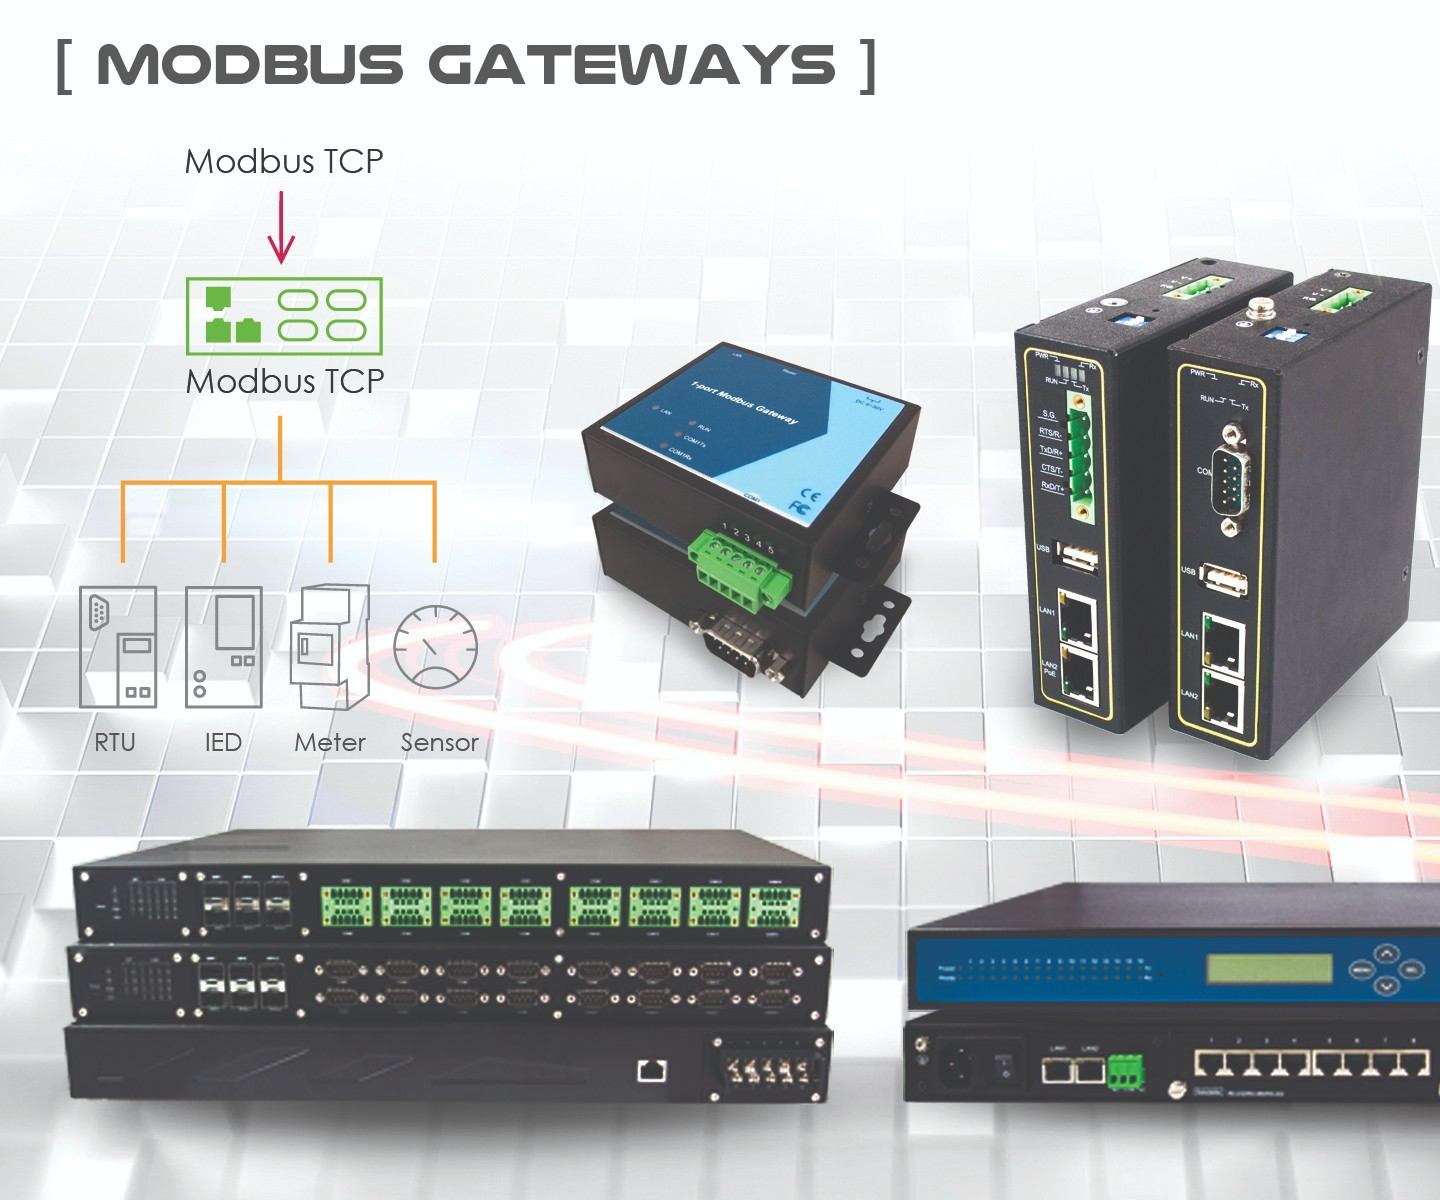 Mencom will display its Modbus Gateway series at IMTS 2018